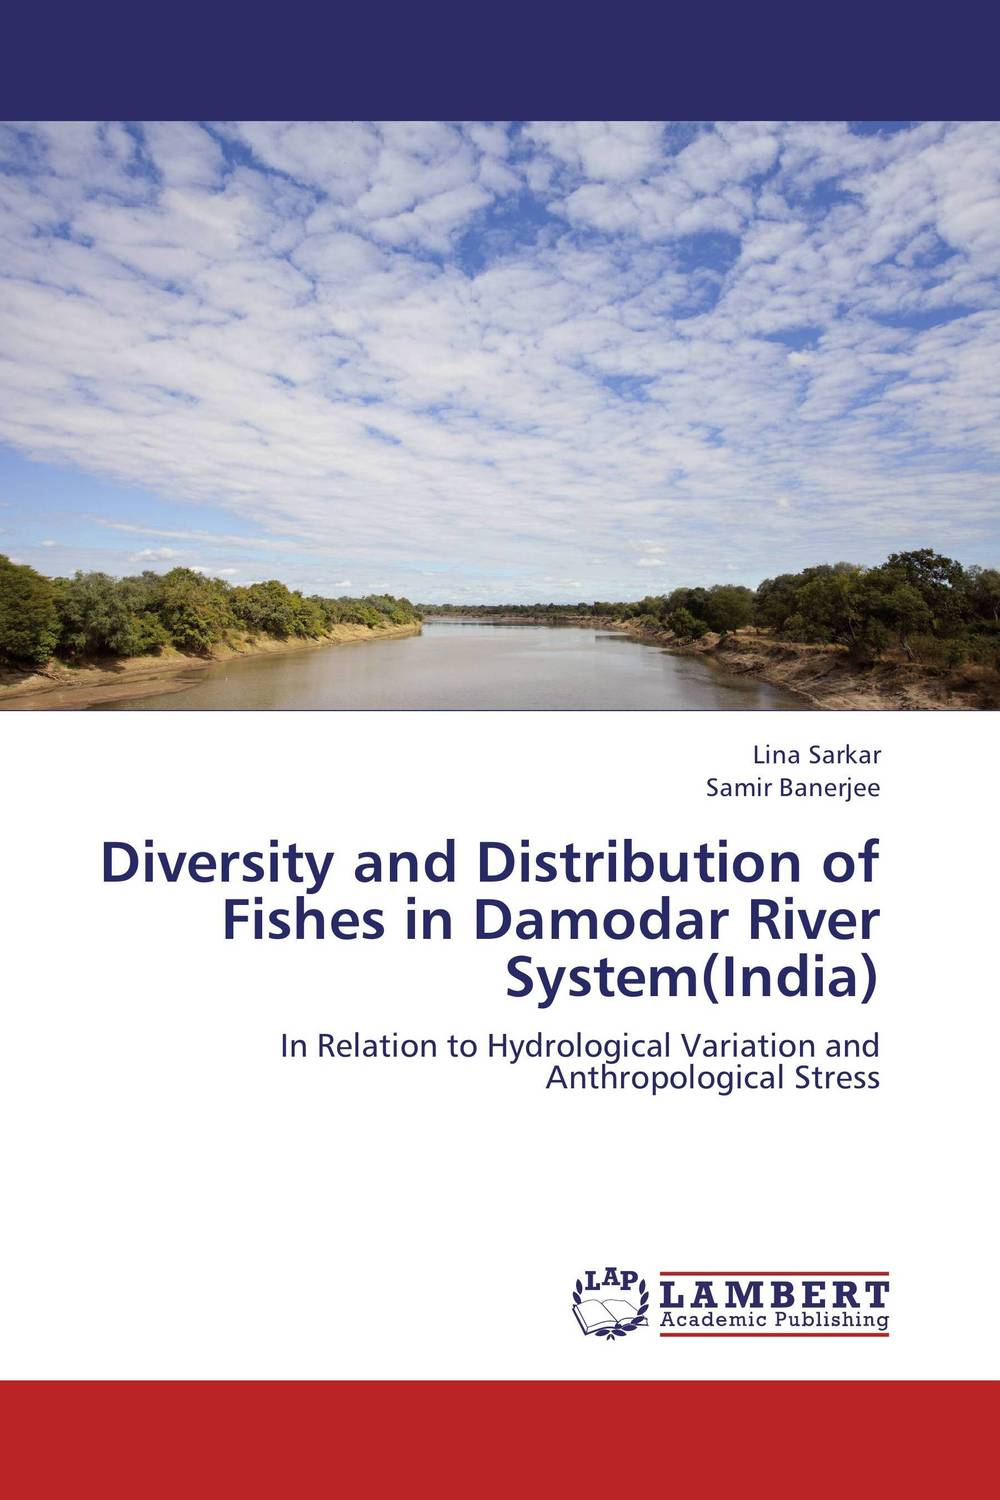 Diversity and Distribution of Fishes in Damodar River System(India) natural enemy fauna in rice wheat system of india